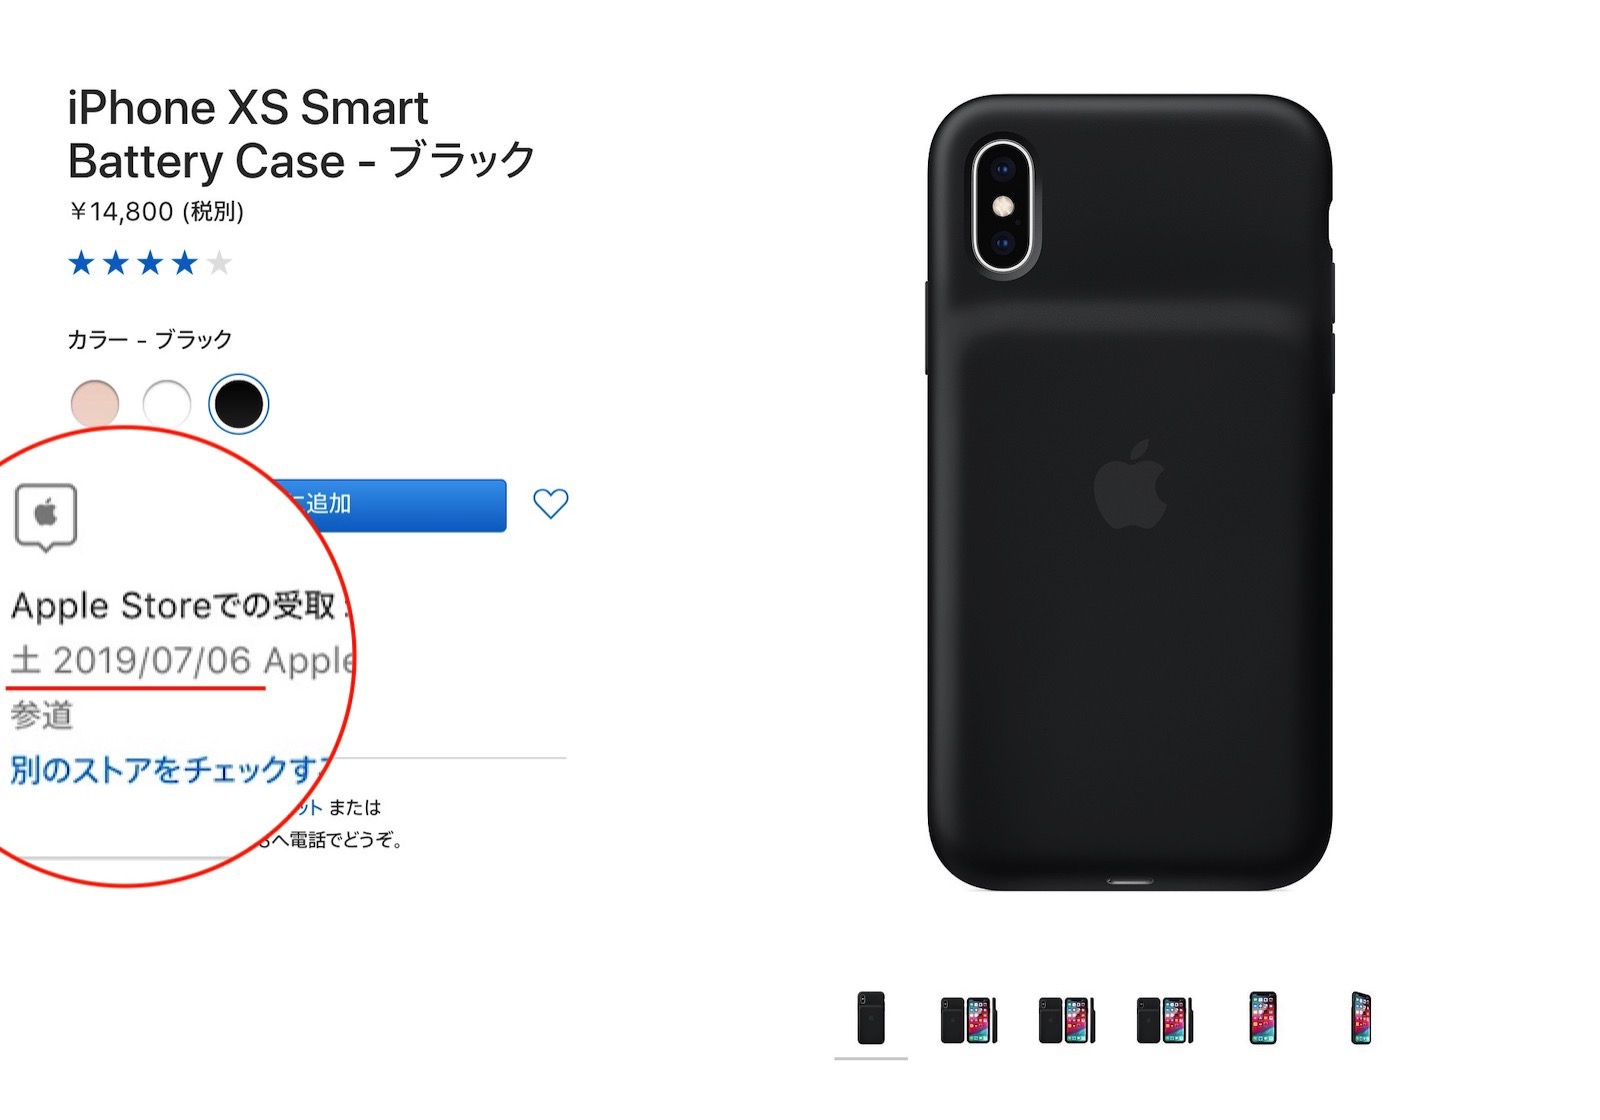 Smart Battery Case not shpping until July